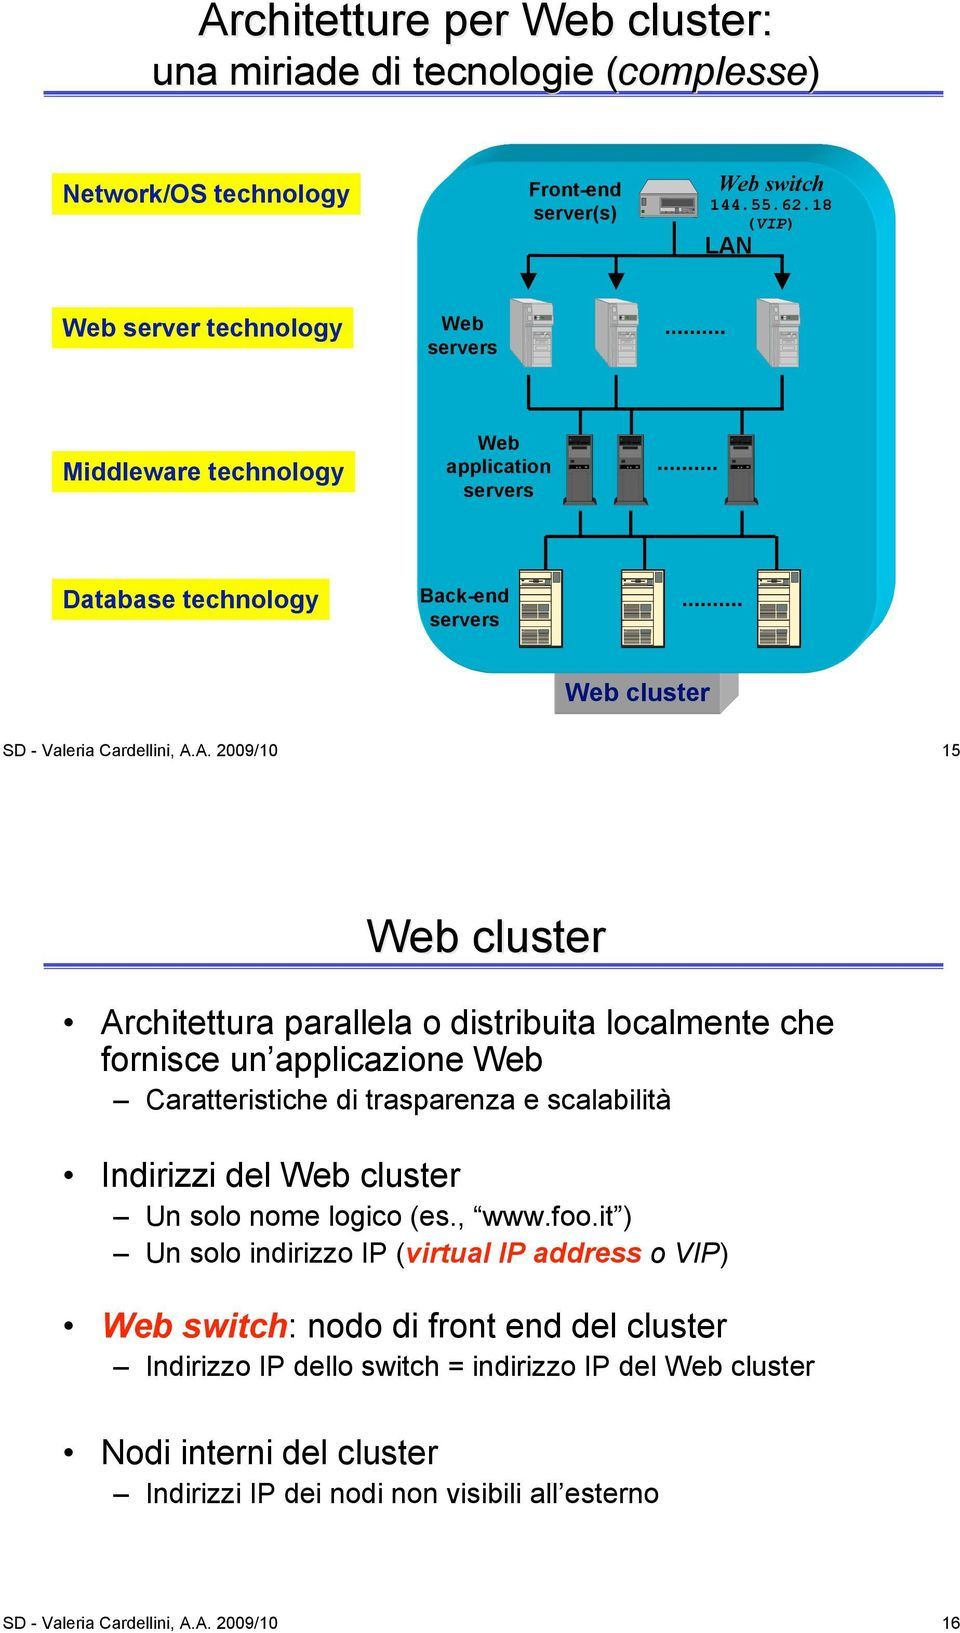 Web server technology Web servers Middleware technology Web application servers Database technology Back-end servers Web cluster SD - Valeria Cardellini, A.